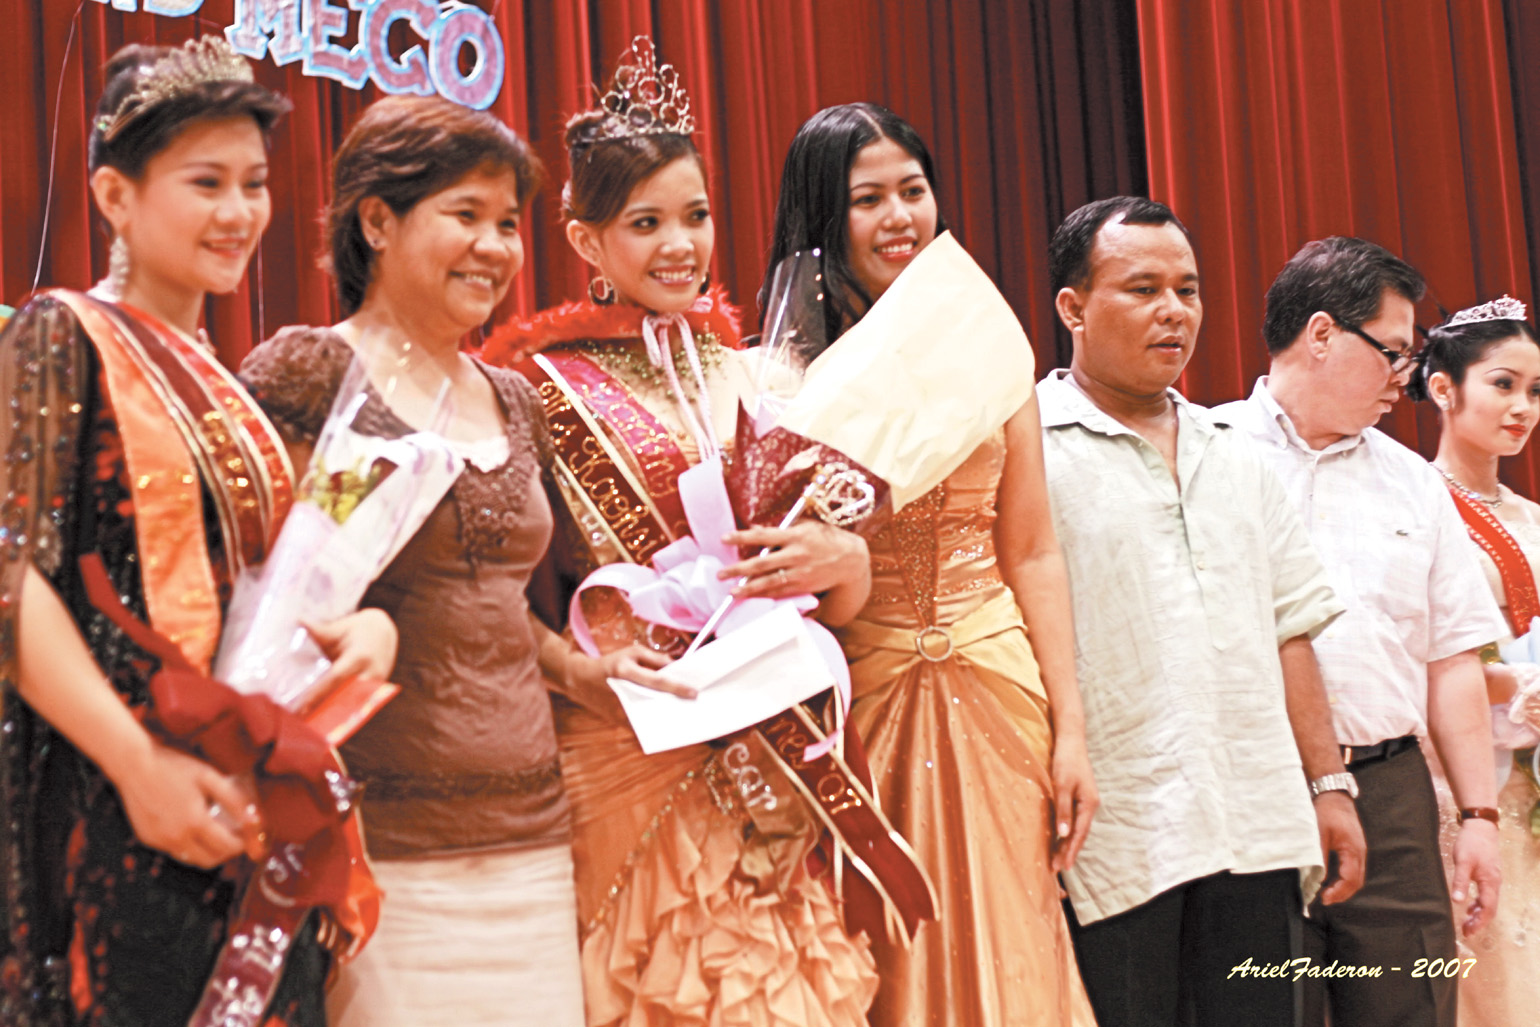 Edeline M. Delfin of Advanced Semiconductor Engineering, third from left, is crowned Ms. Kaohsiung-Philippines 2007 last Sunday.